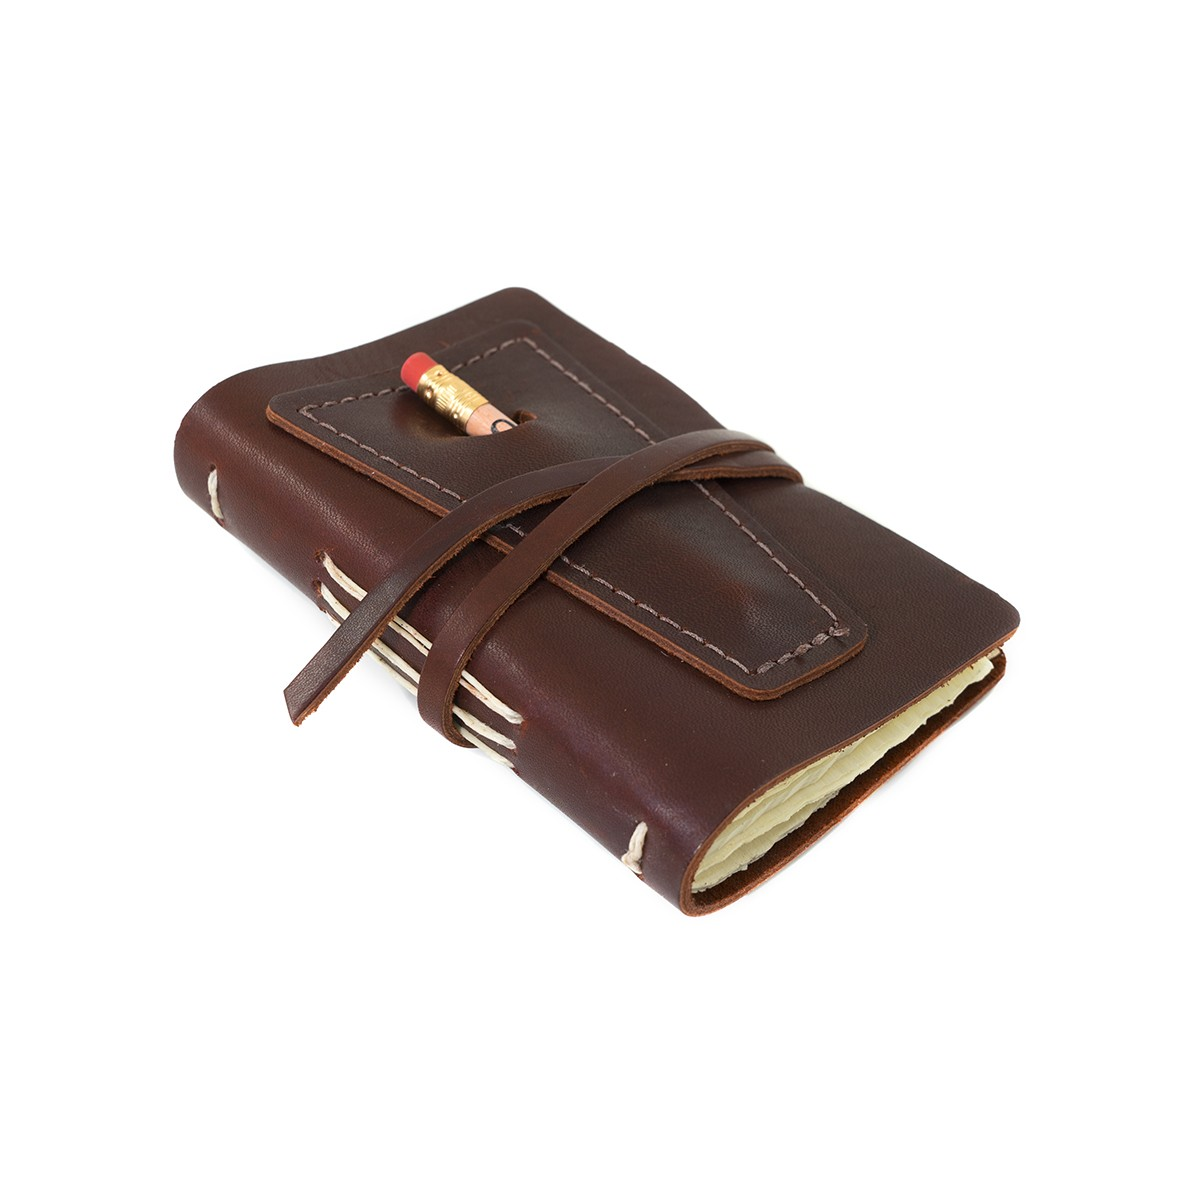 epiphany-leather-jounal-with-pocket-burgundy-leather-angled-view.jpg